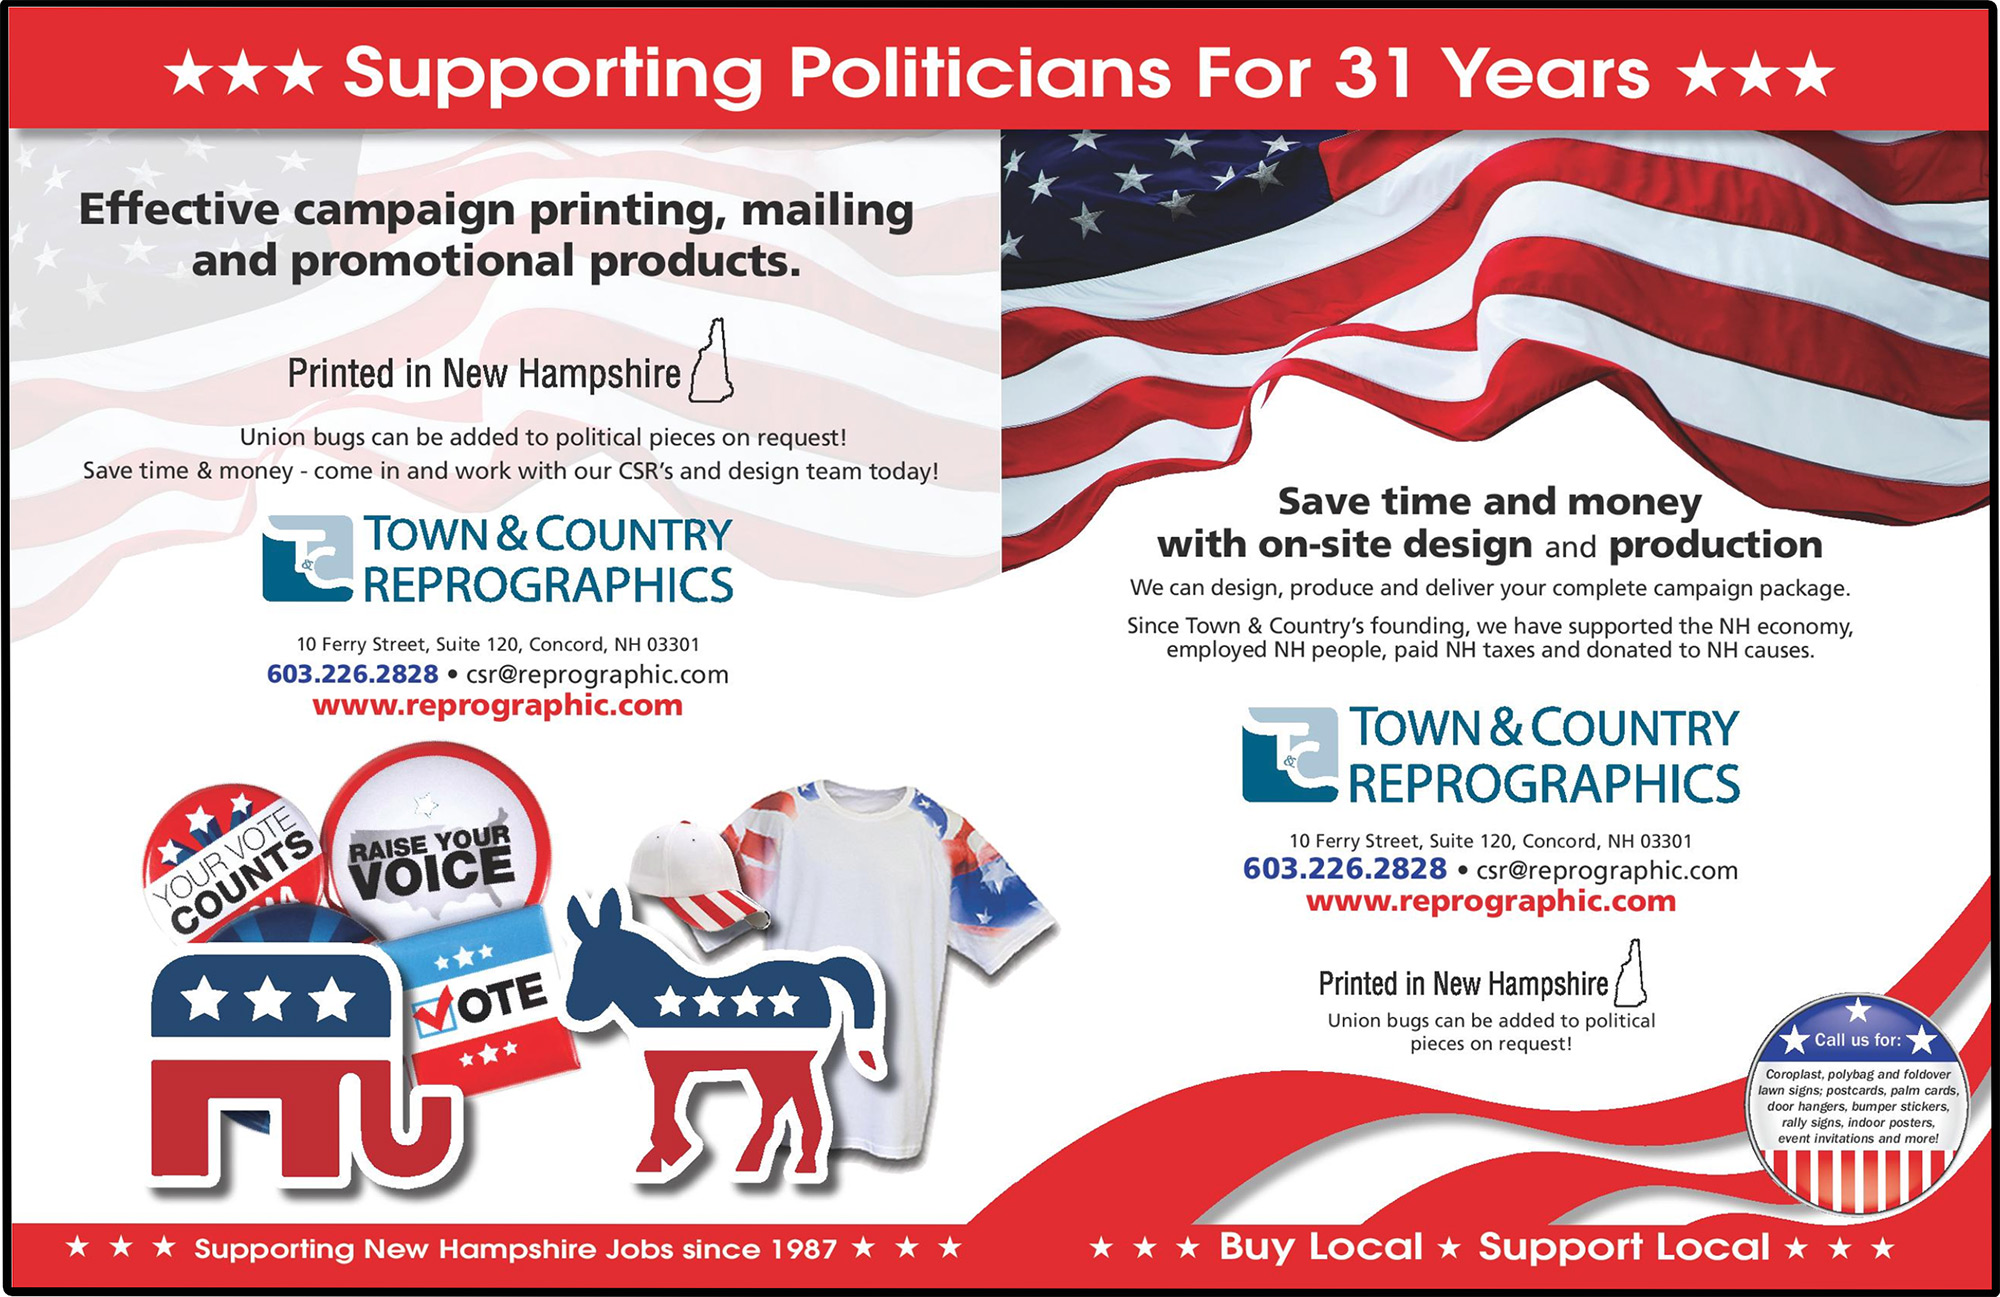 Town & Country Reprographic in Concord NH for political printing, lawn signs and palm cards